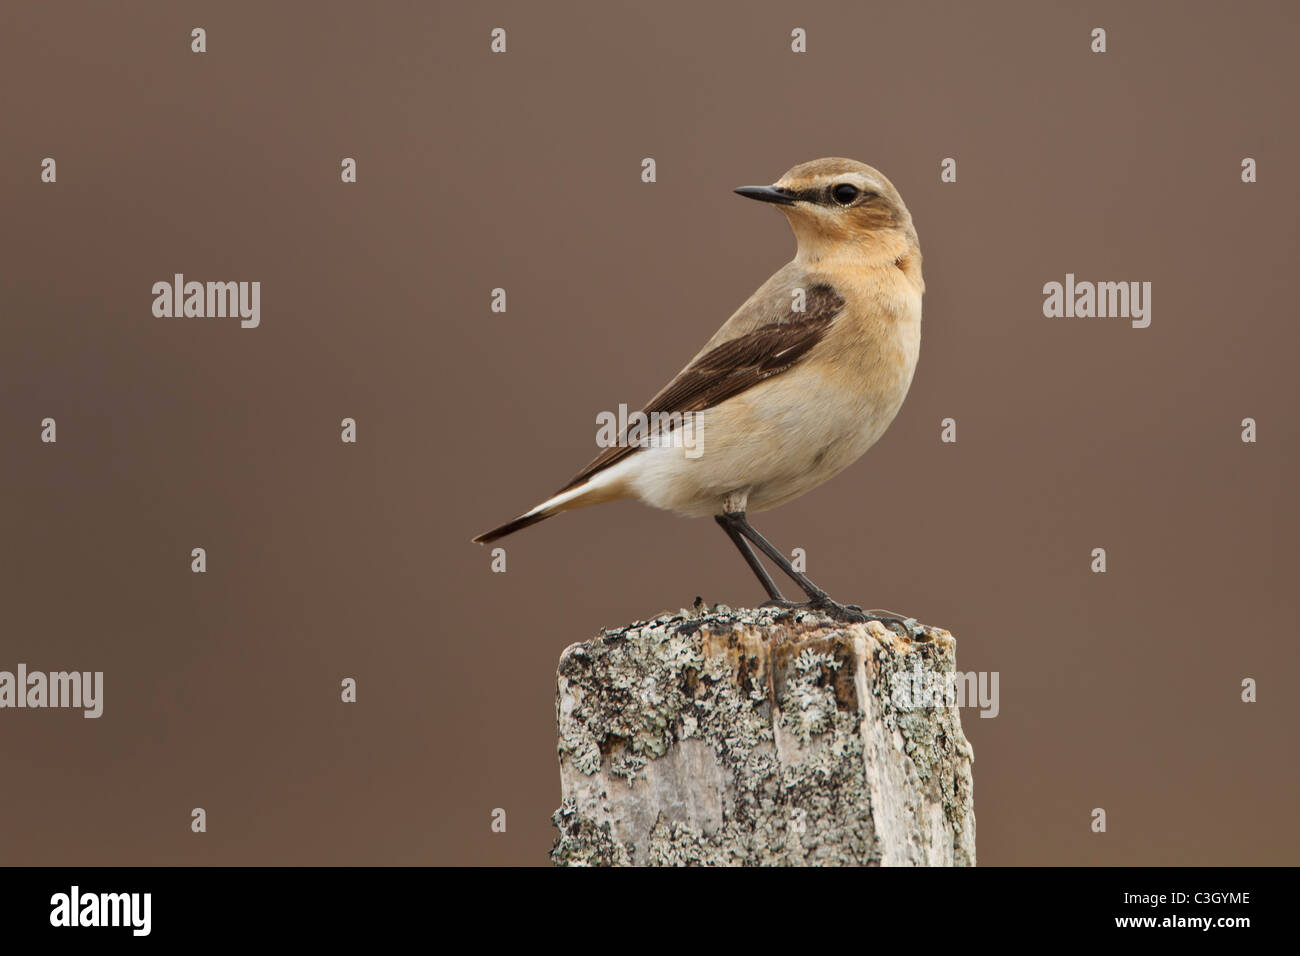 Northern Wheatear (Oenanthe oenanthe) perched on a lichen covered post in the Highlands of Scotland - Stock Image